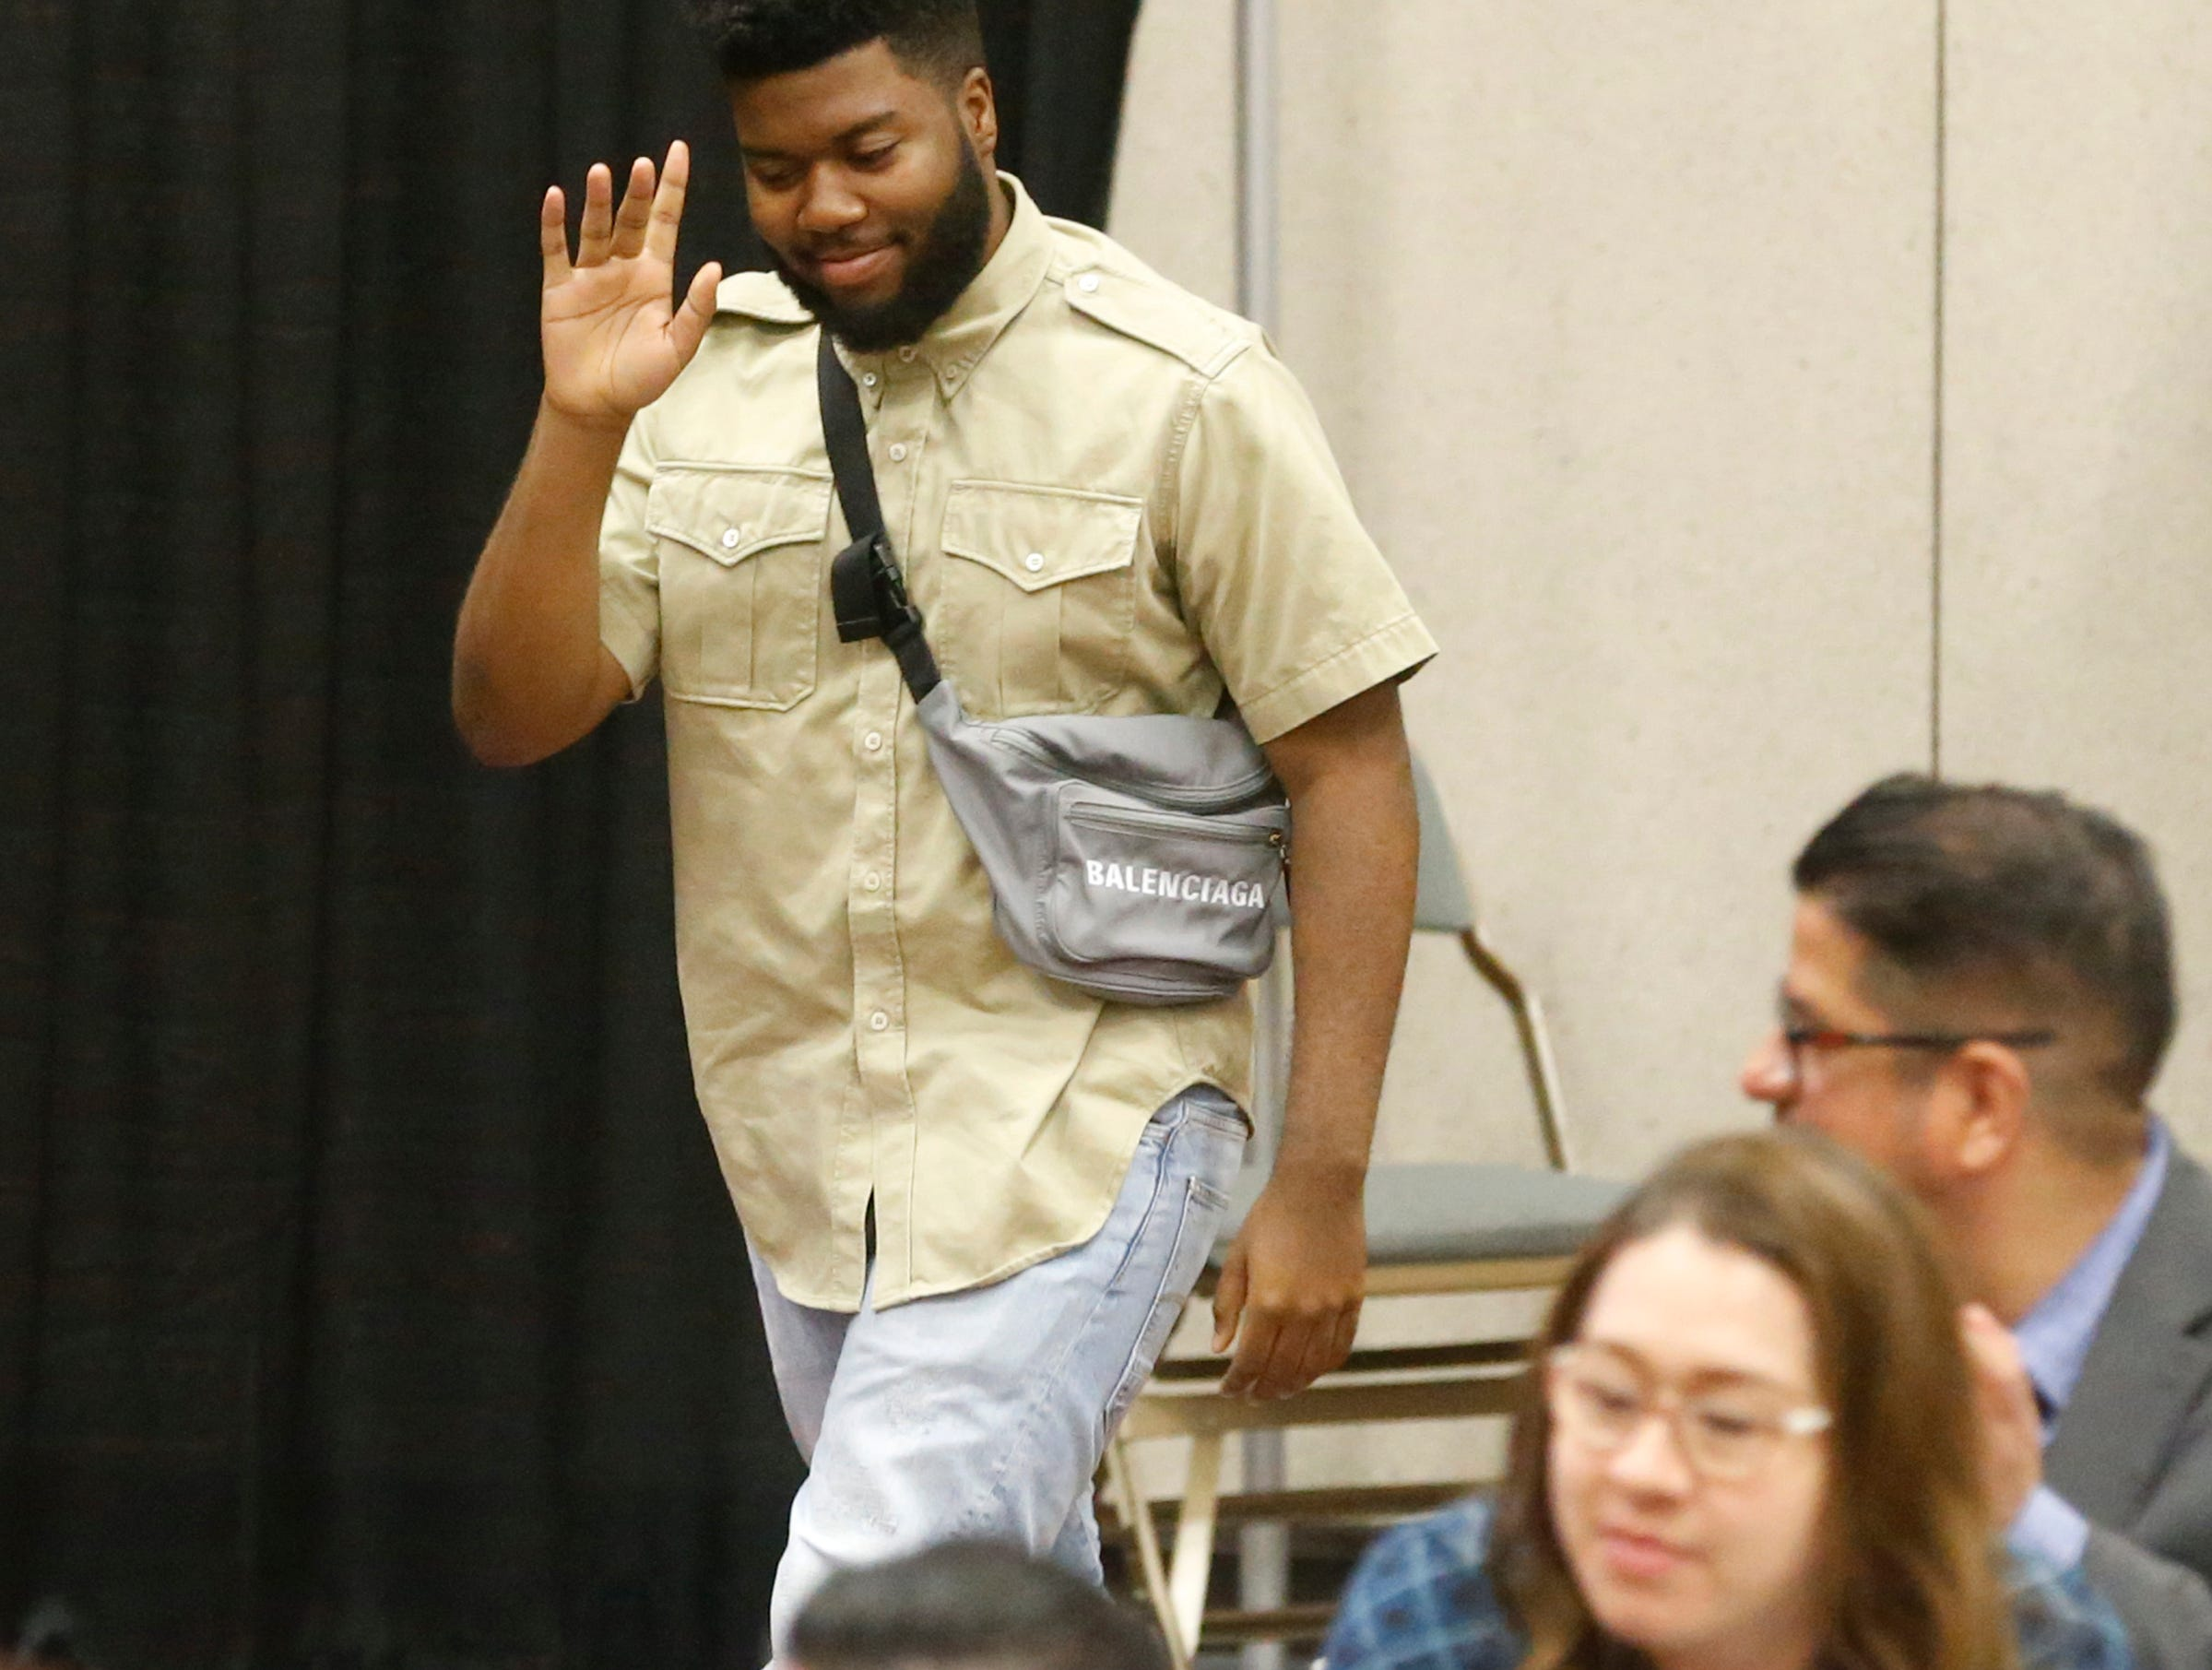 Khalid makes his way to the stage after recognized by El Paso Mayor Dee Margo where Margo presented him with the Key to the City during the State of the City luncheon at the El Paso Convention Center.